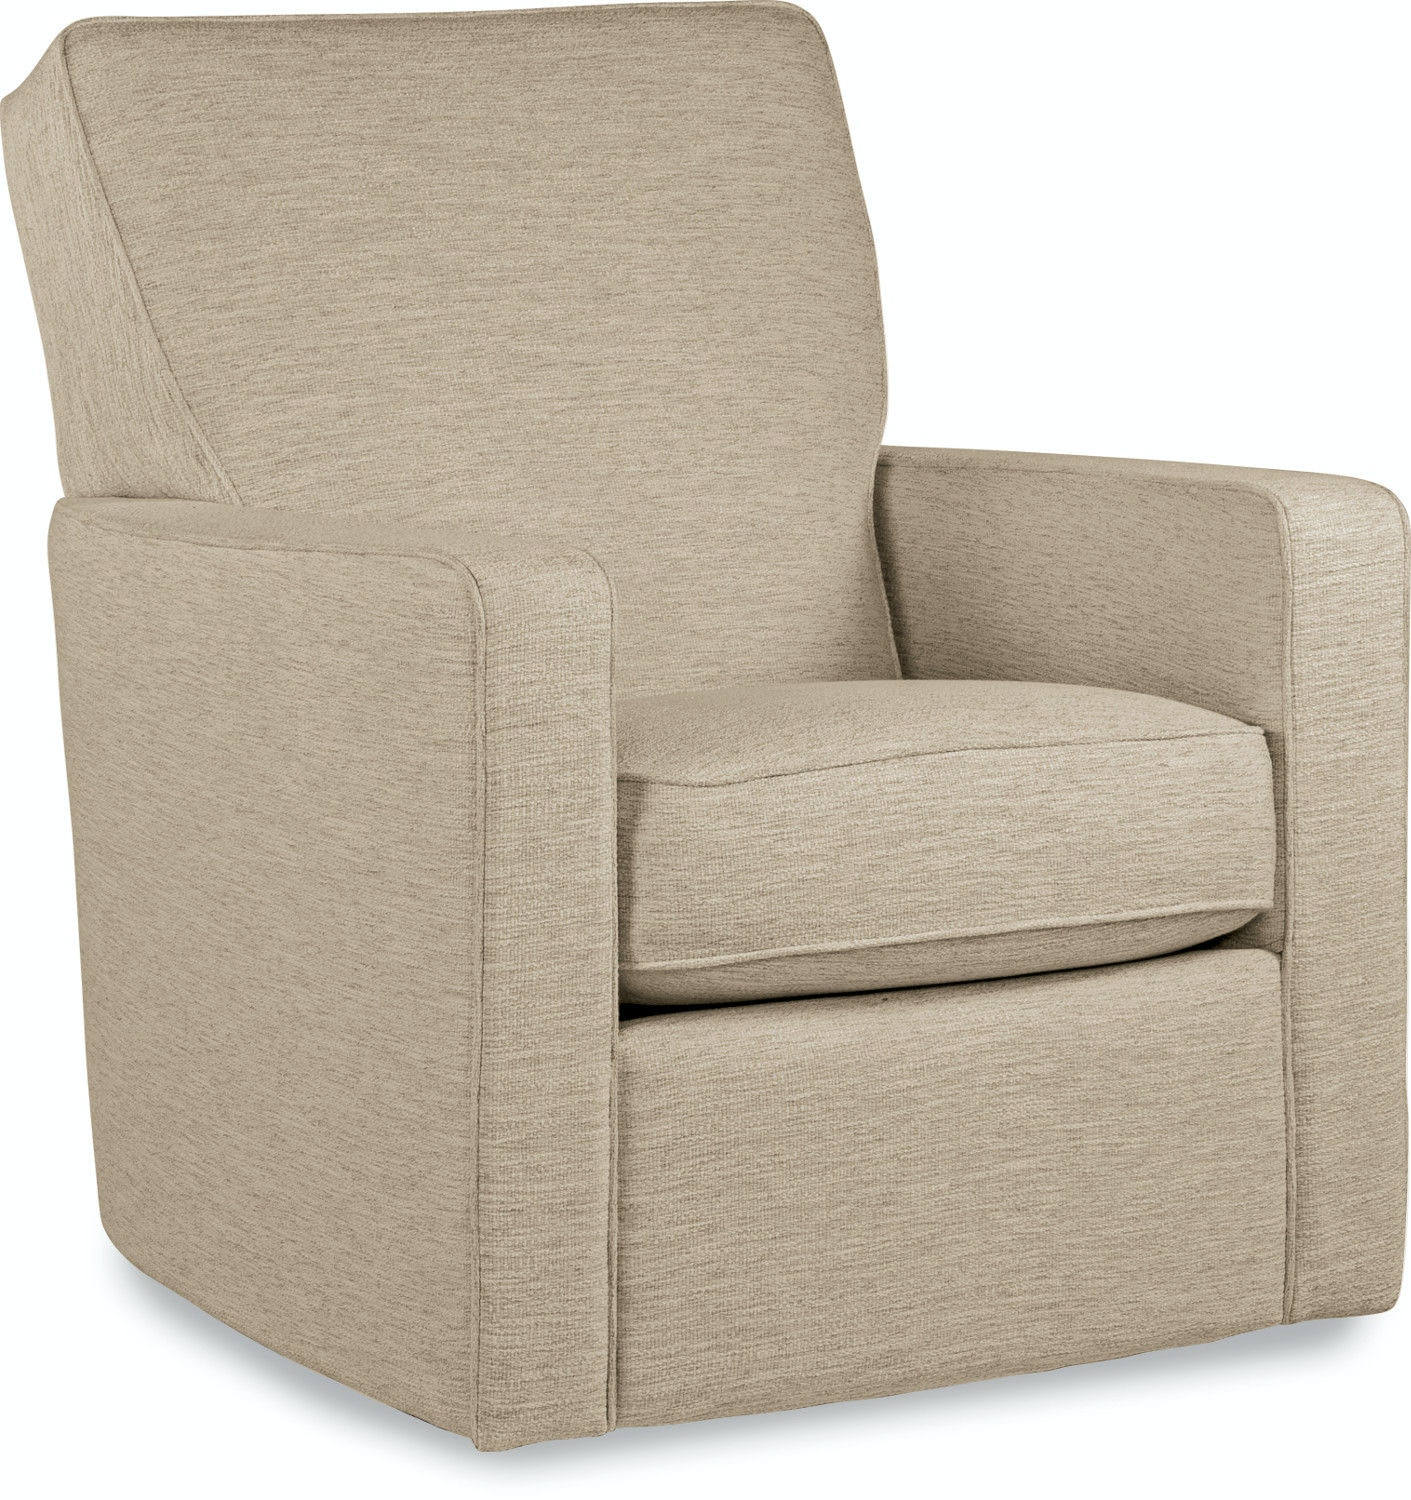 Lazy Boy Swivel Chair Living Room La Z Boy Premier Swivel Occasional Chair 215479